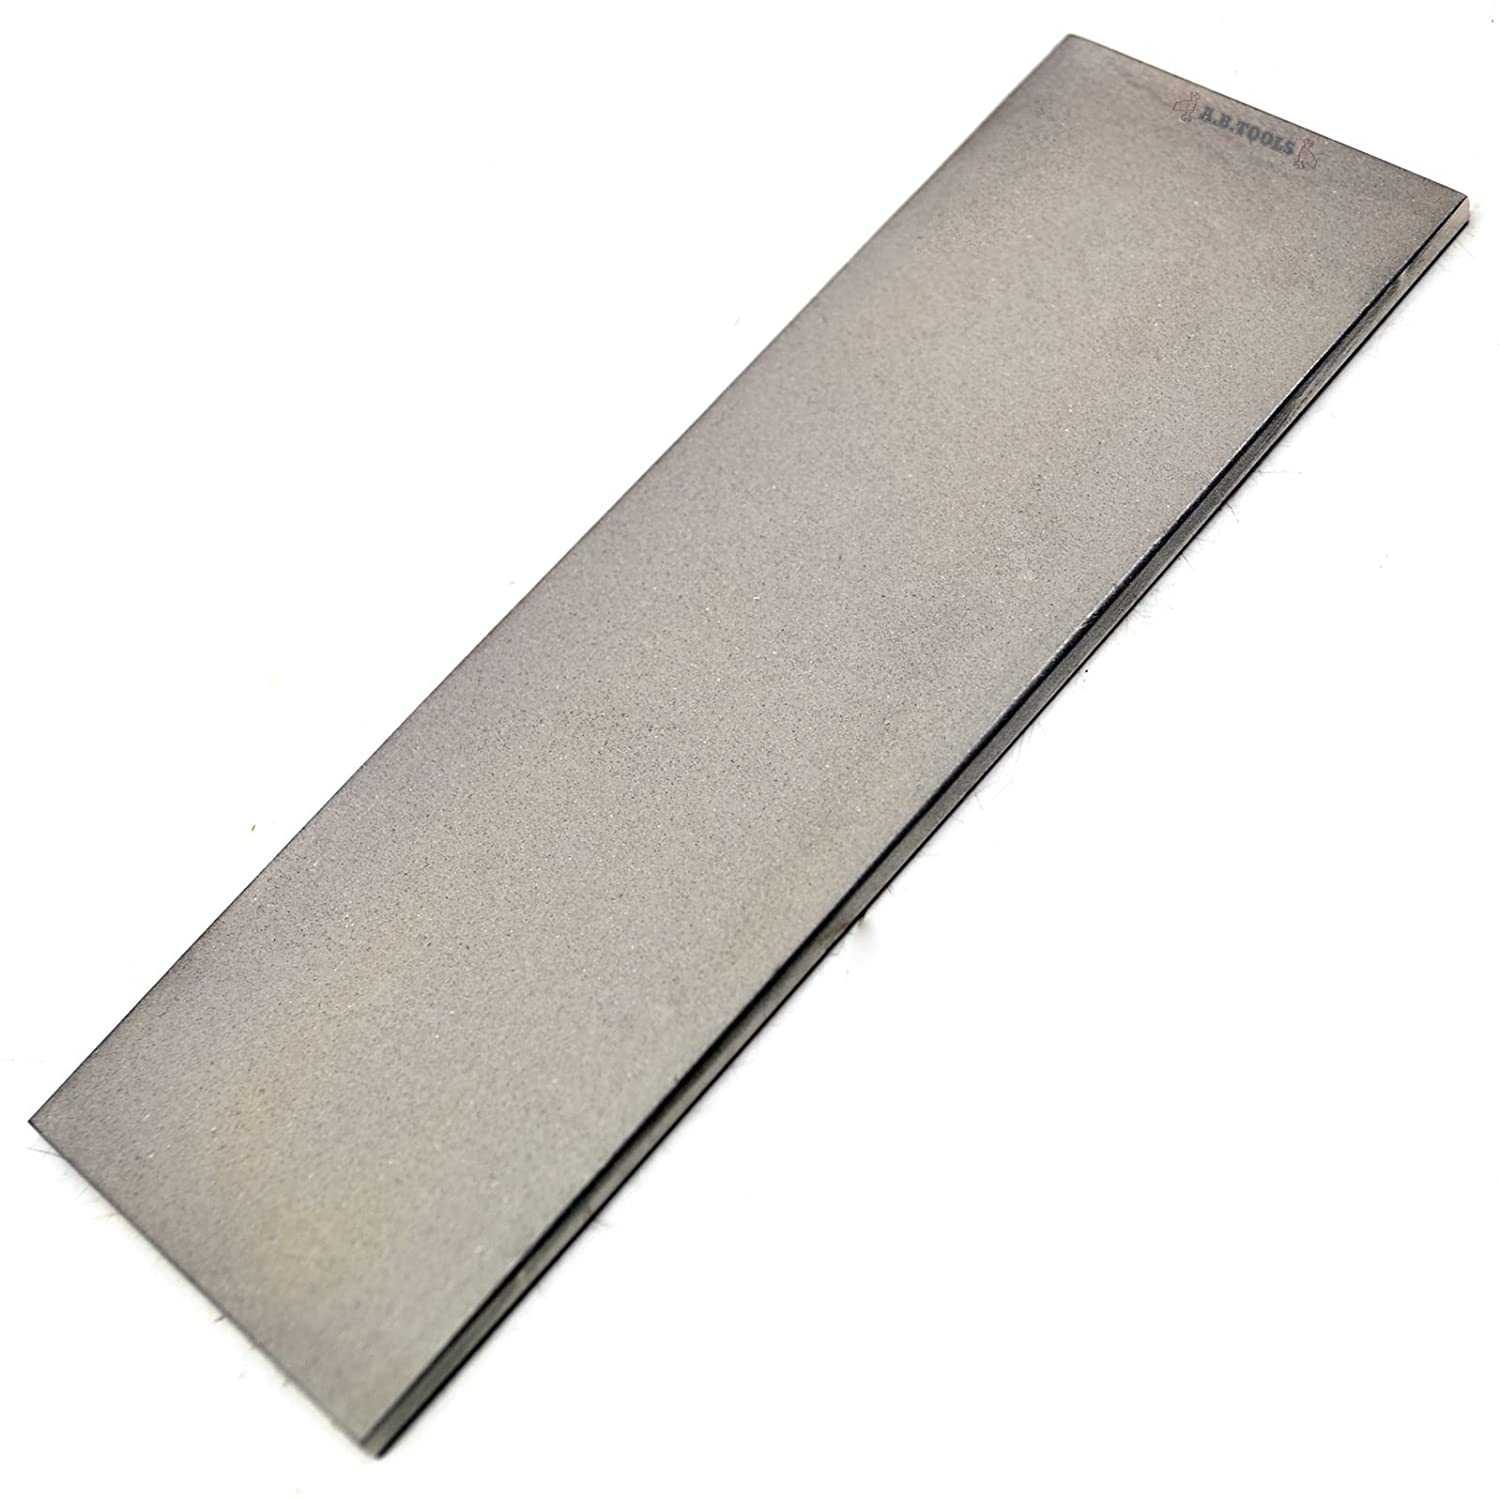 6 Professional Diamond Sharpening Stone / Extra Fine Grit for all Blades TE564 AB Tools